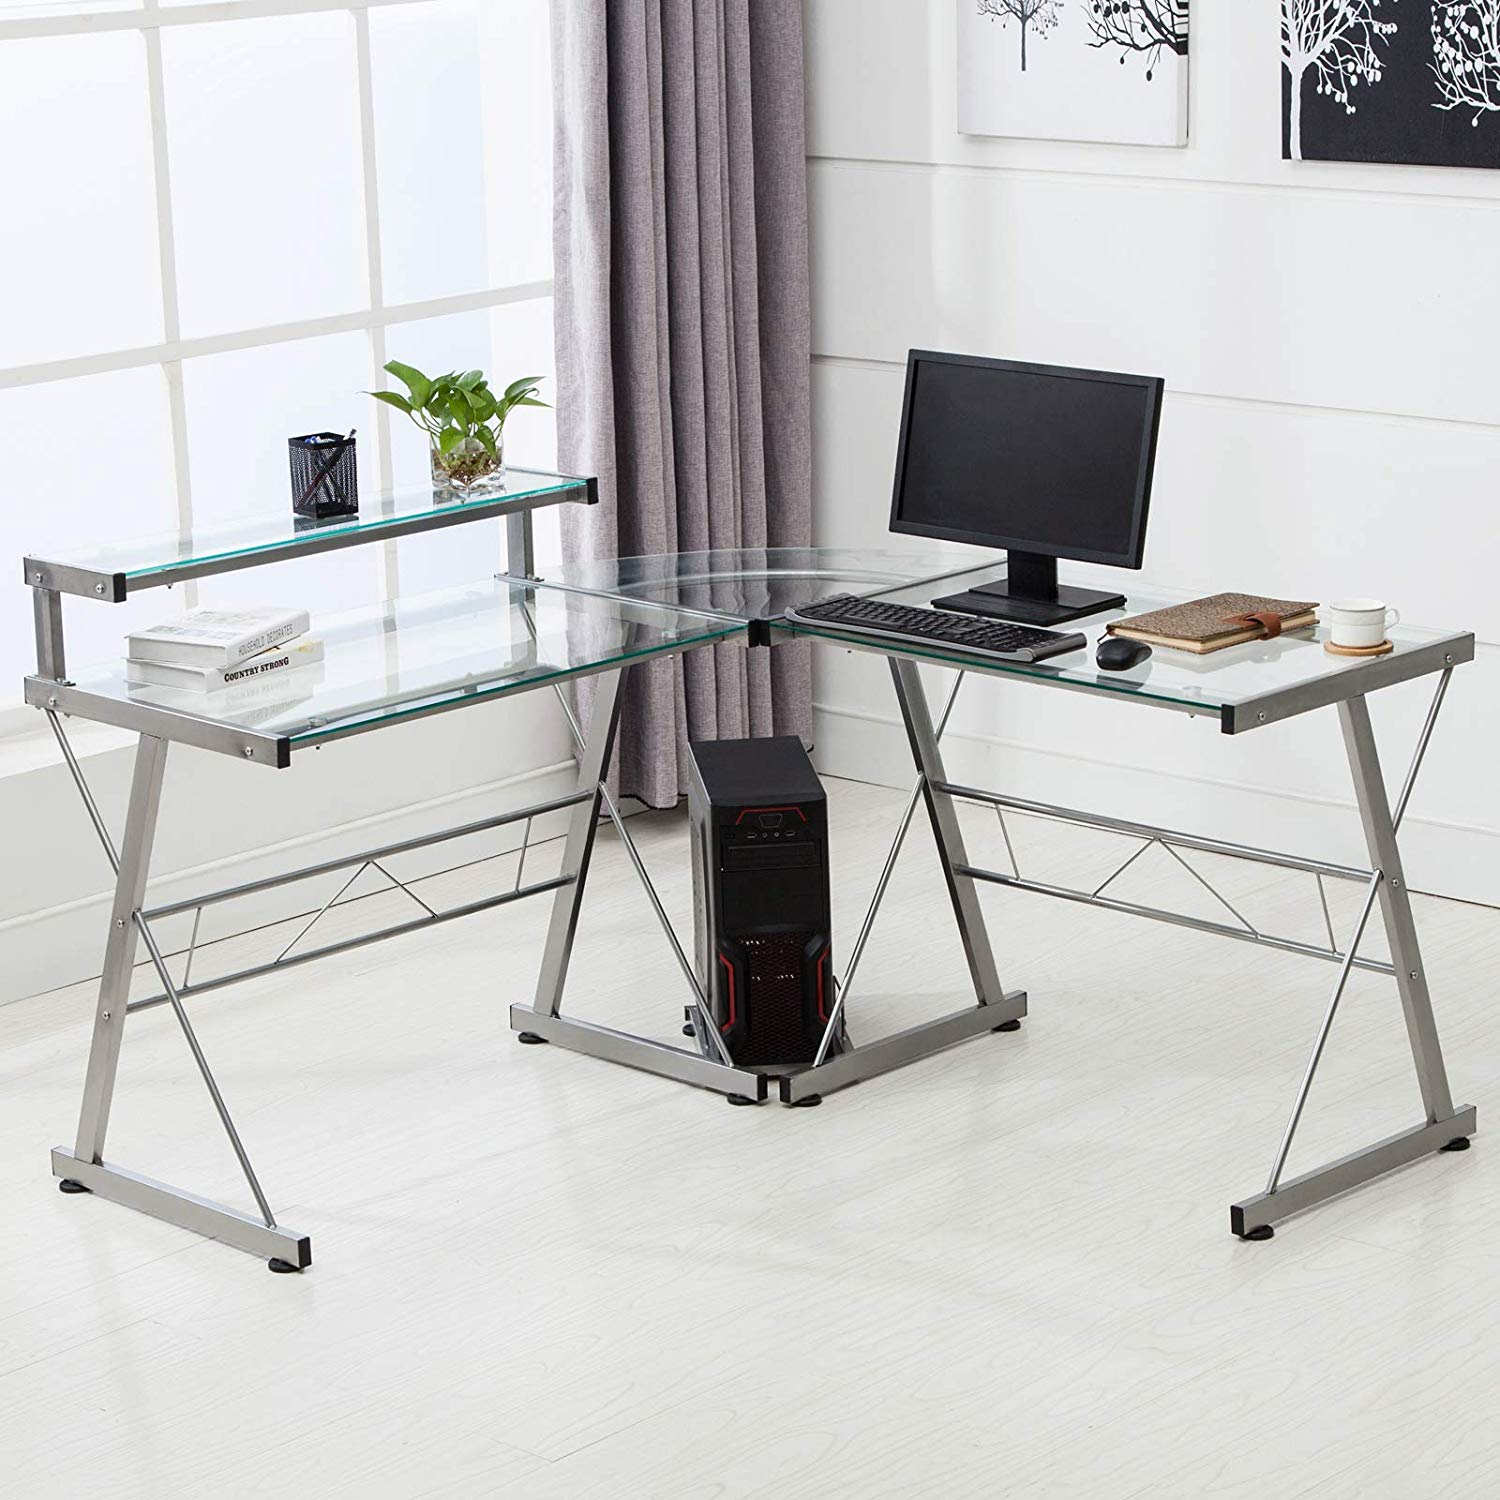 L-Shaped Corner Computer Desk with Shelf & Stand, Glass Laptop PC/Computer Table Workstation Home Office Furniture, Glass & Metal, Clear